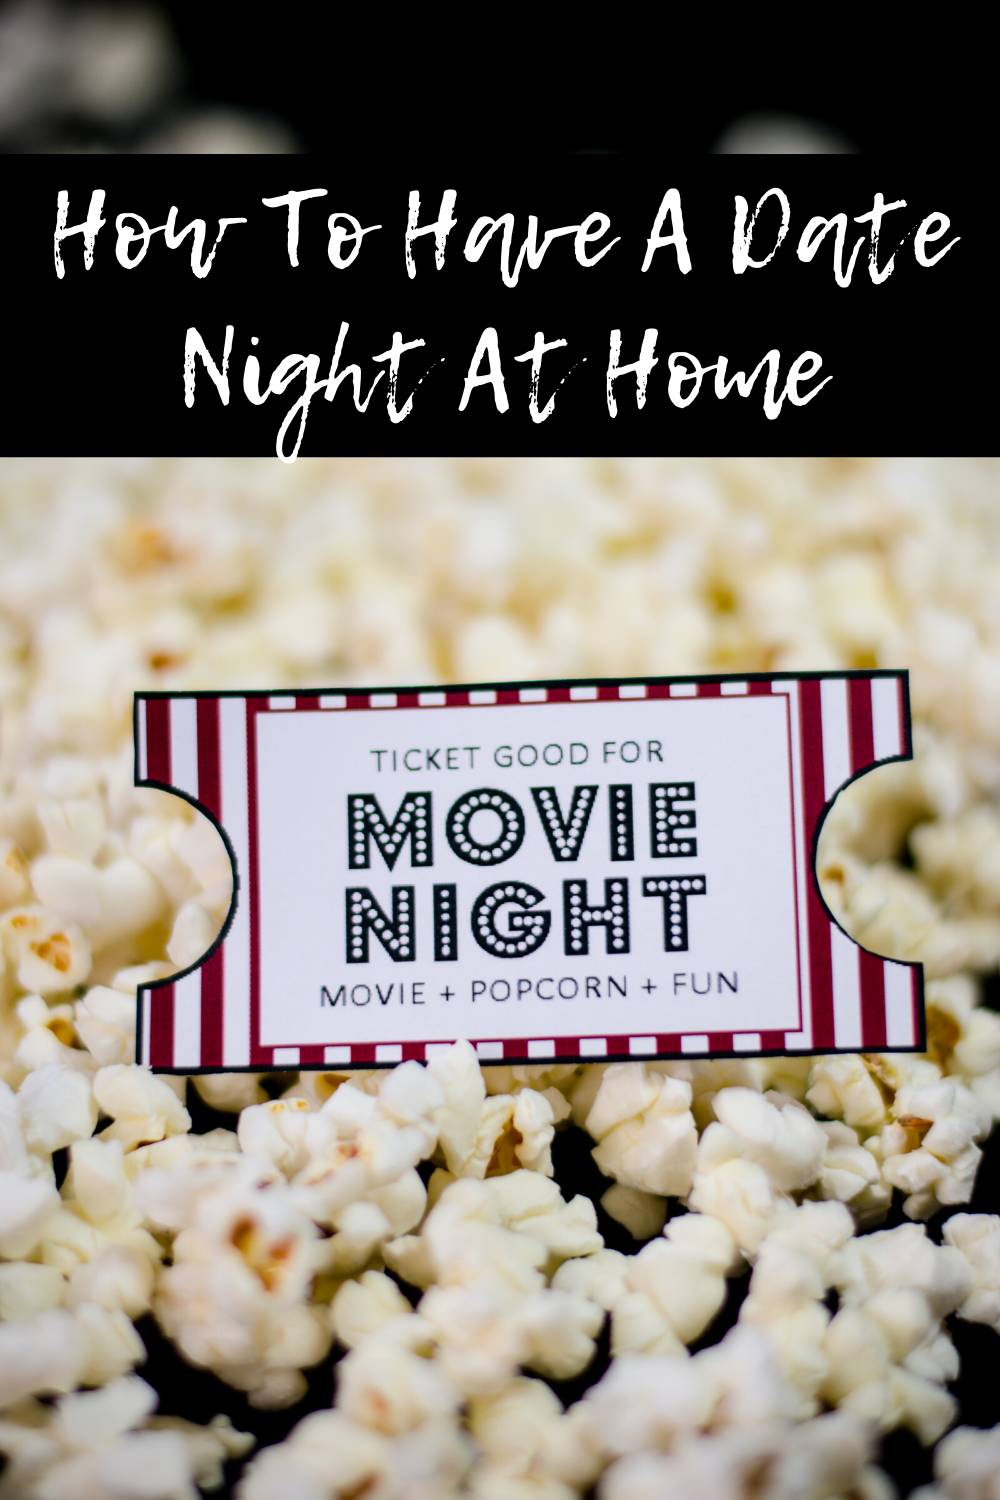 These fun date night at home ideas will keep you focused on your relationship, having a good time, and not feeling left out while we practice social distancing!